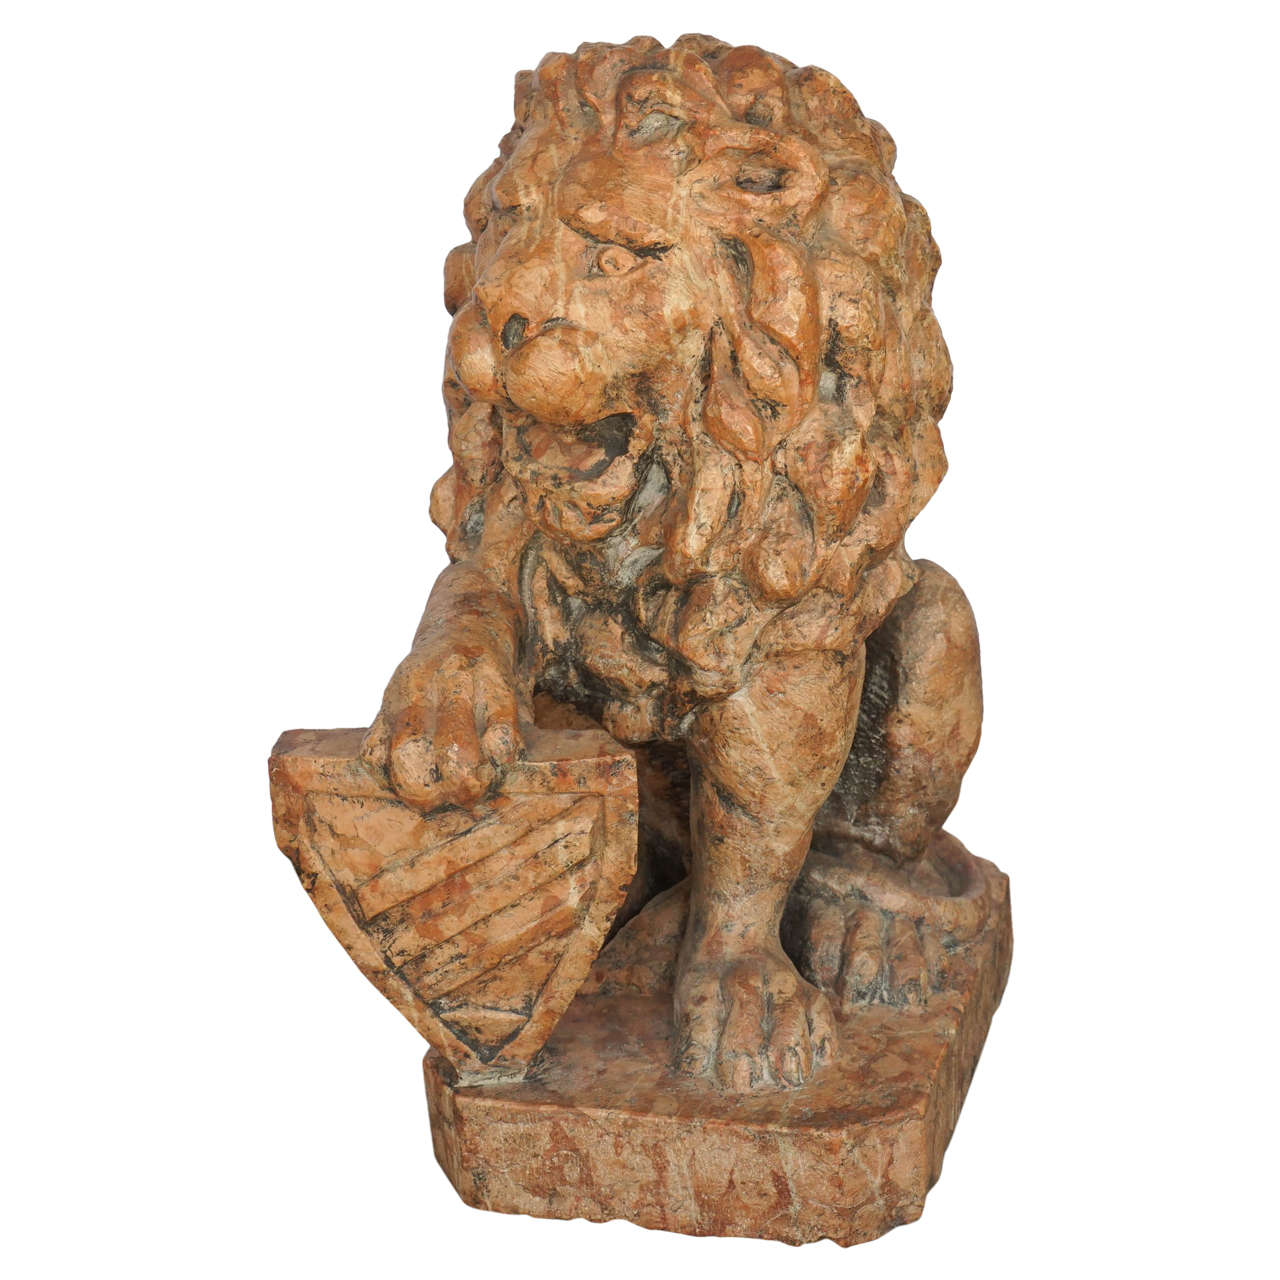 19th Century Carved Breccia Marble Baroque Revival French Lion Sculpture